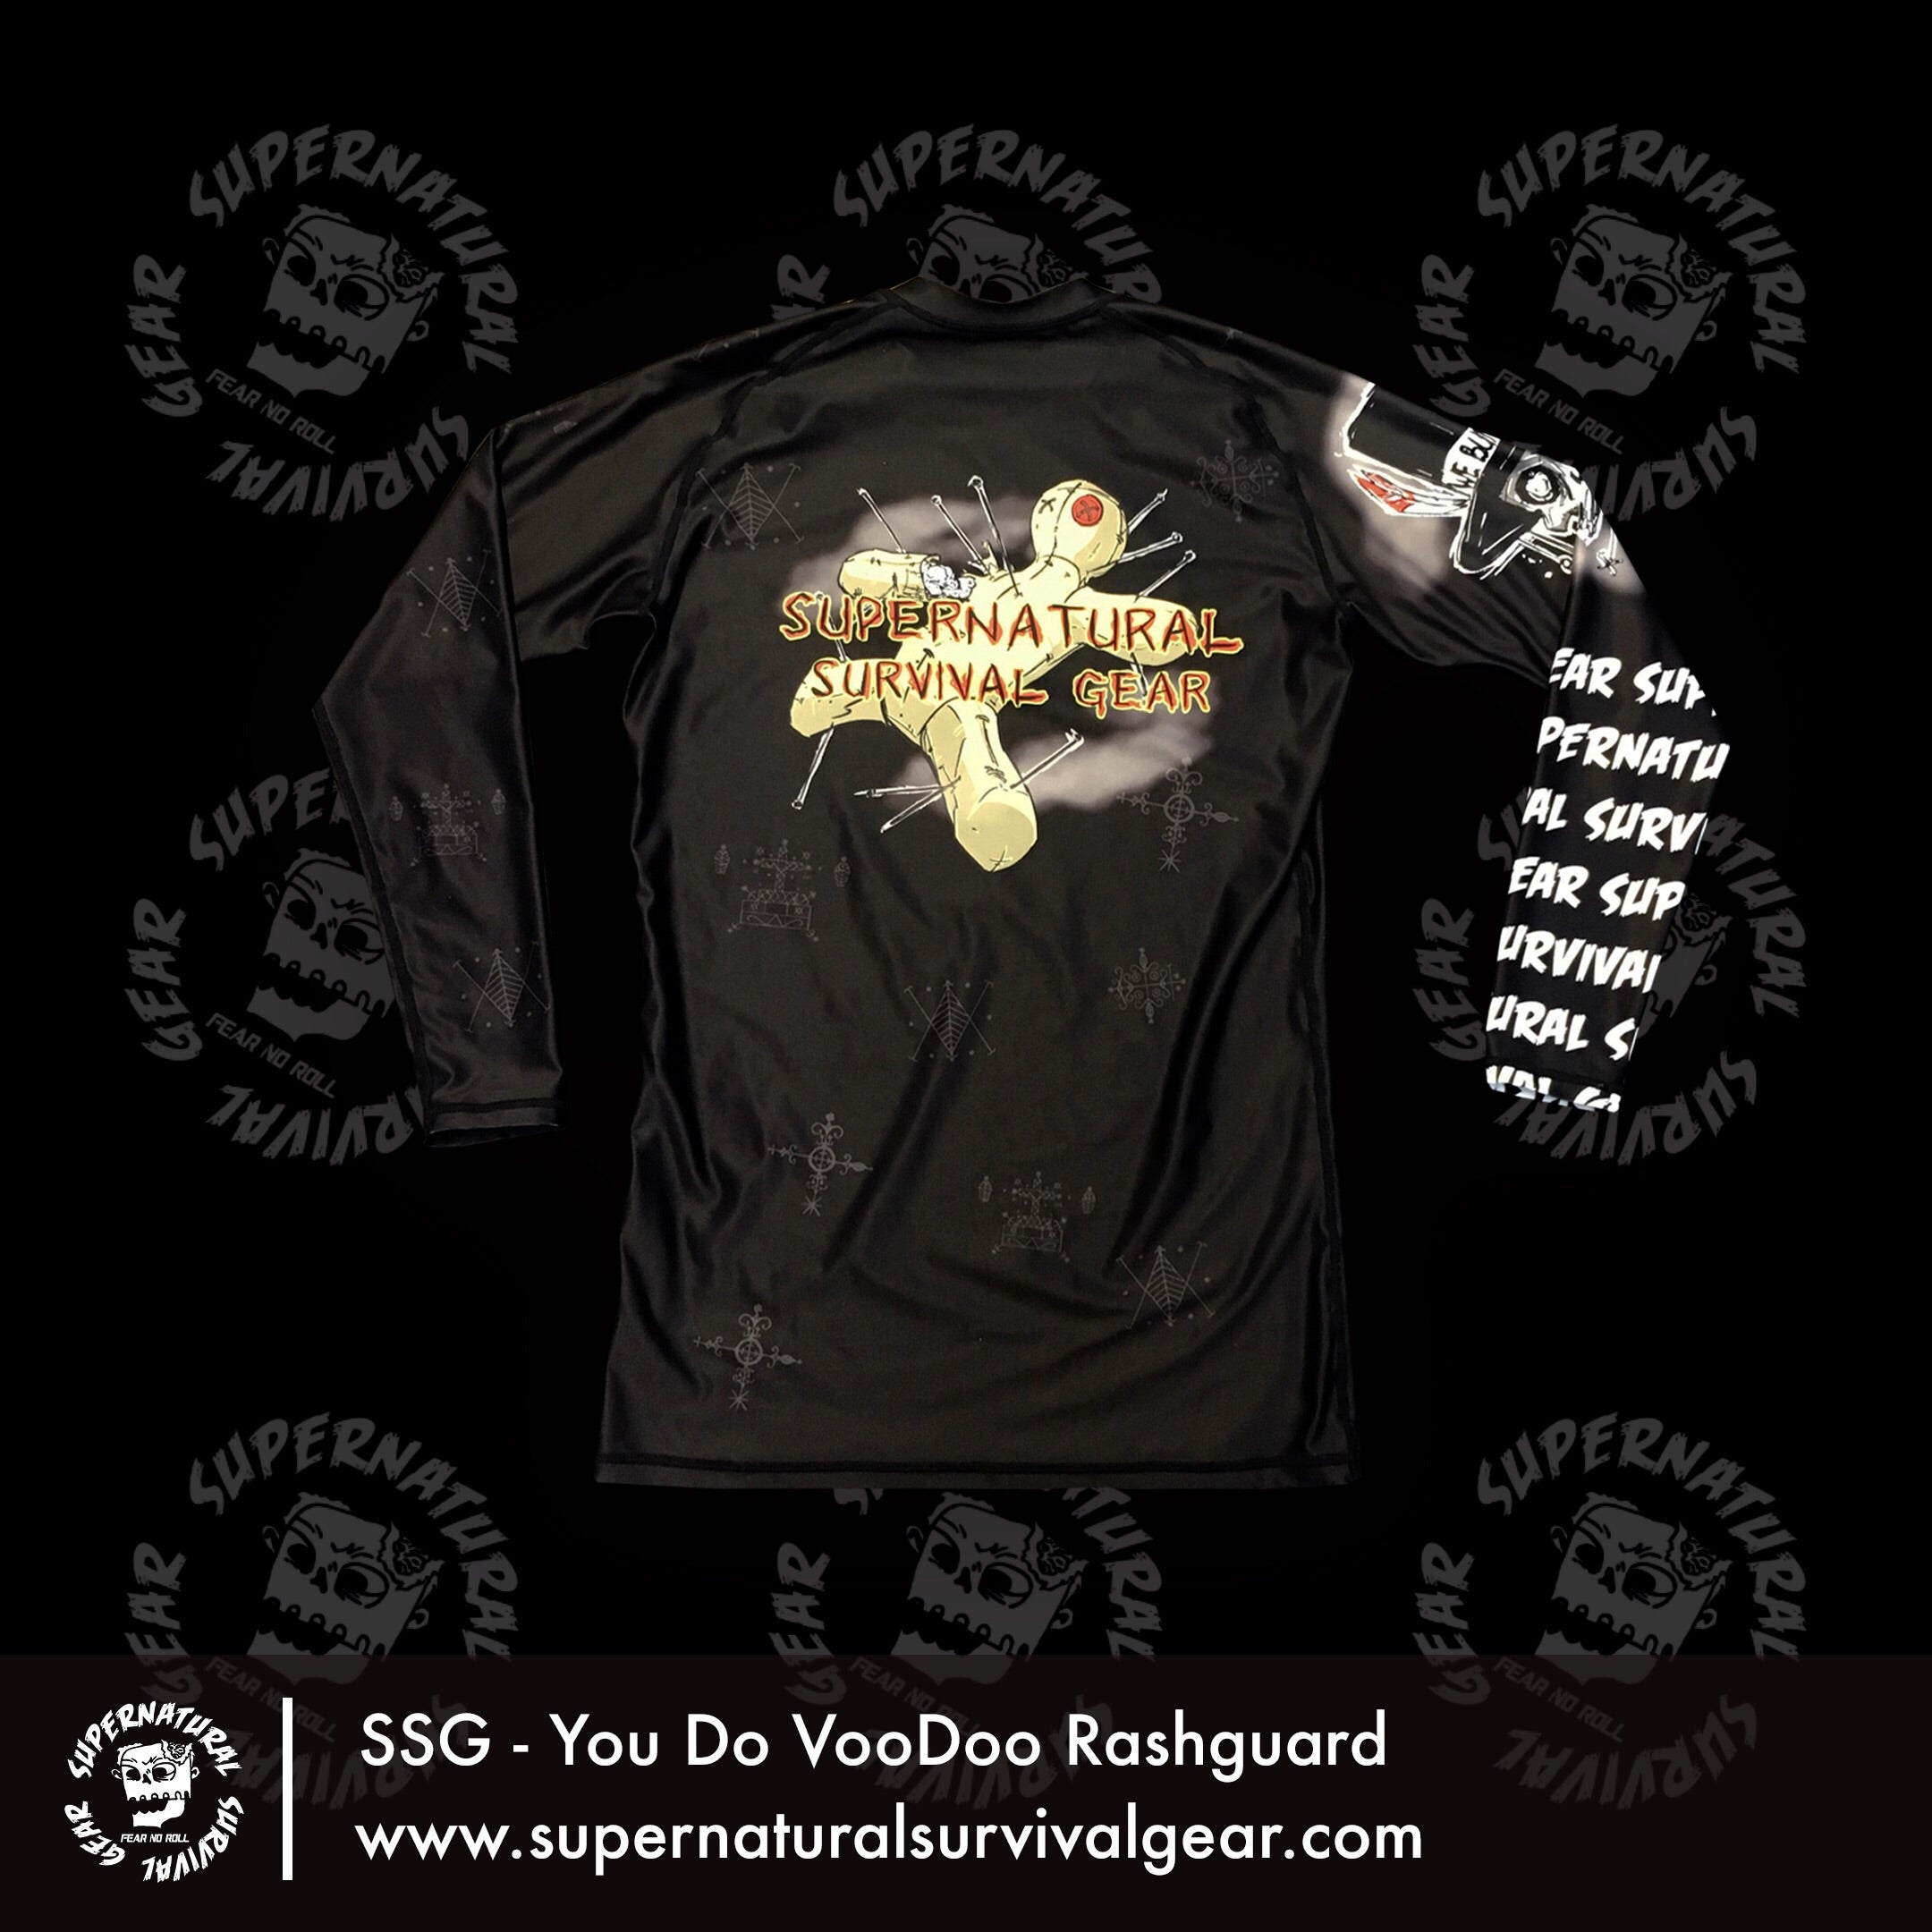 You Do VooDoo Rash Guard (Long-sleeve)